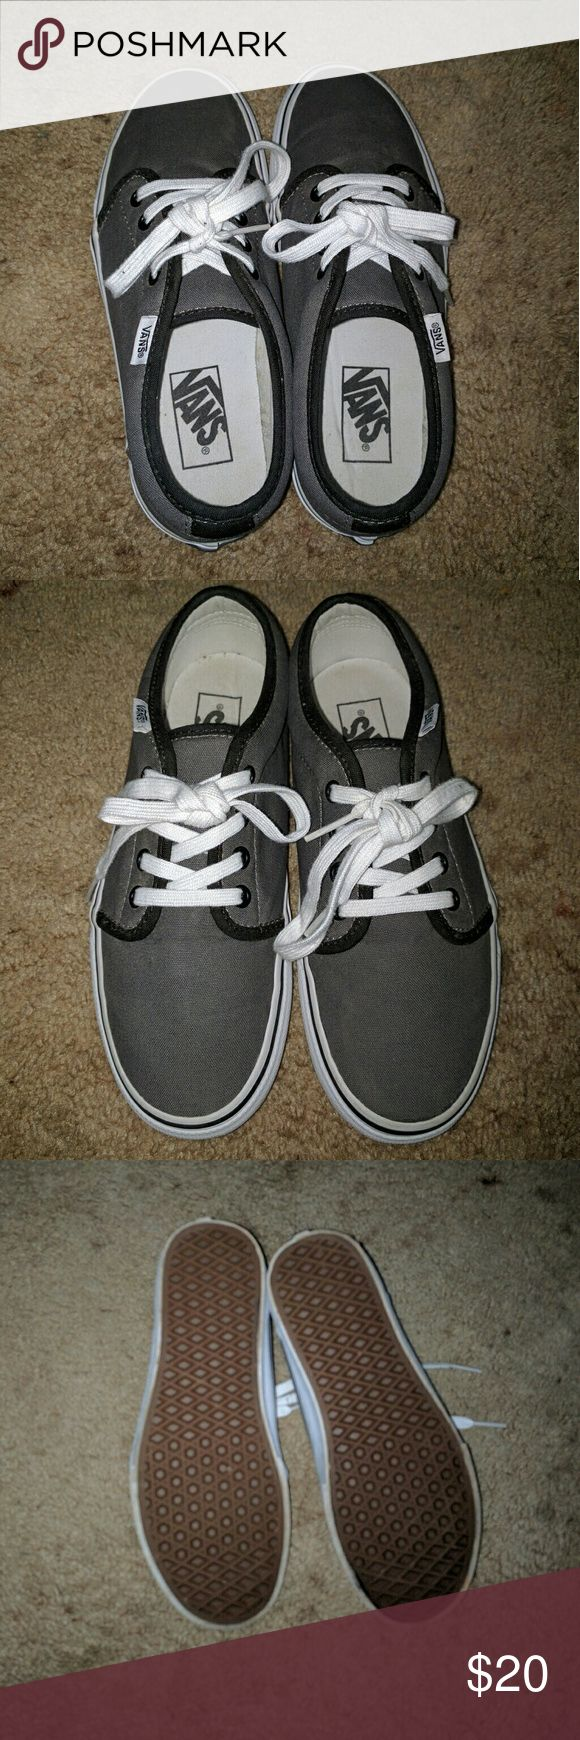 Vans shoes Great condition, no rip or tear. Men size 6, women size 7.5. ??Price for sale. ?? Vans Shoes Sneakers